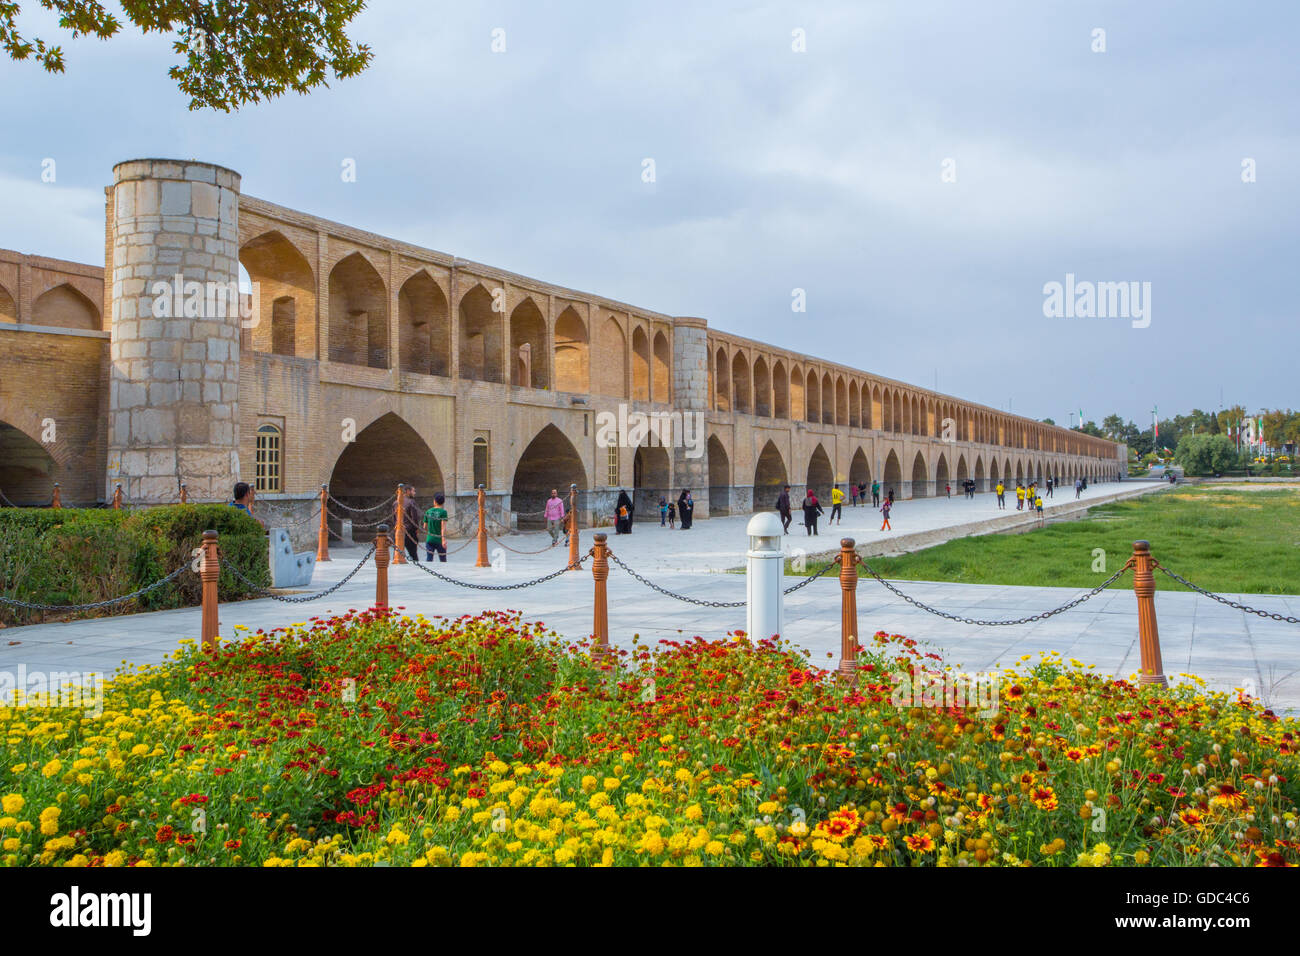 Iran,Esfahan City,Pol-e Khaju Bridge - Stock Image